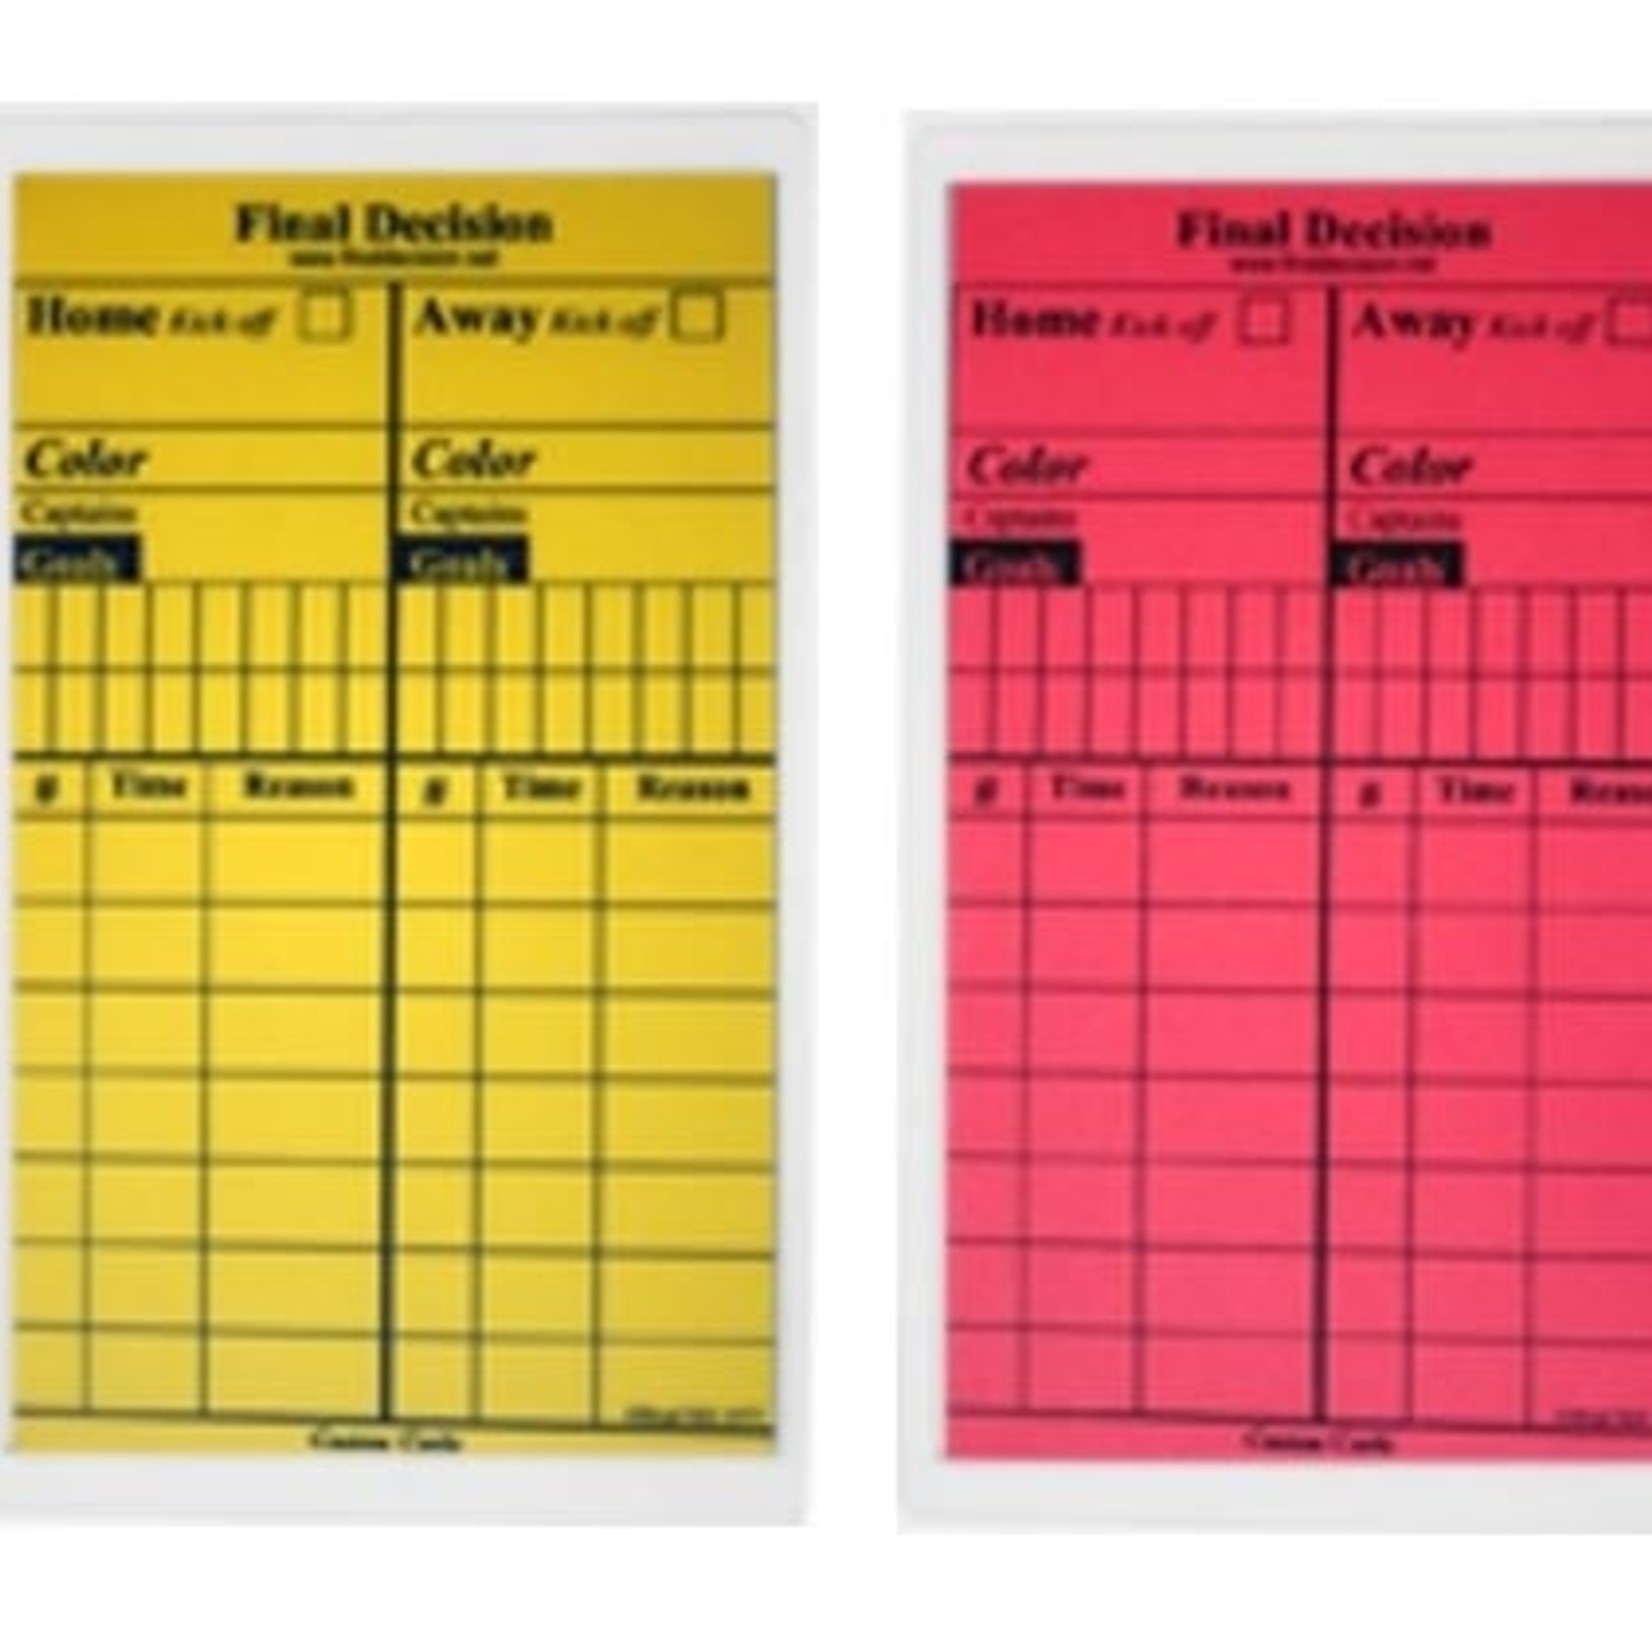 FINAL DECISION REFEREE WRITE-ON CARDS